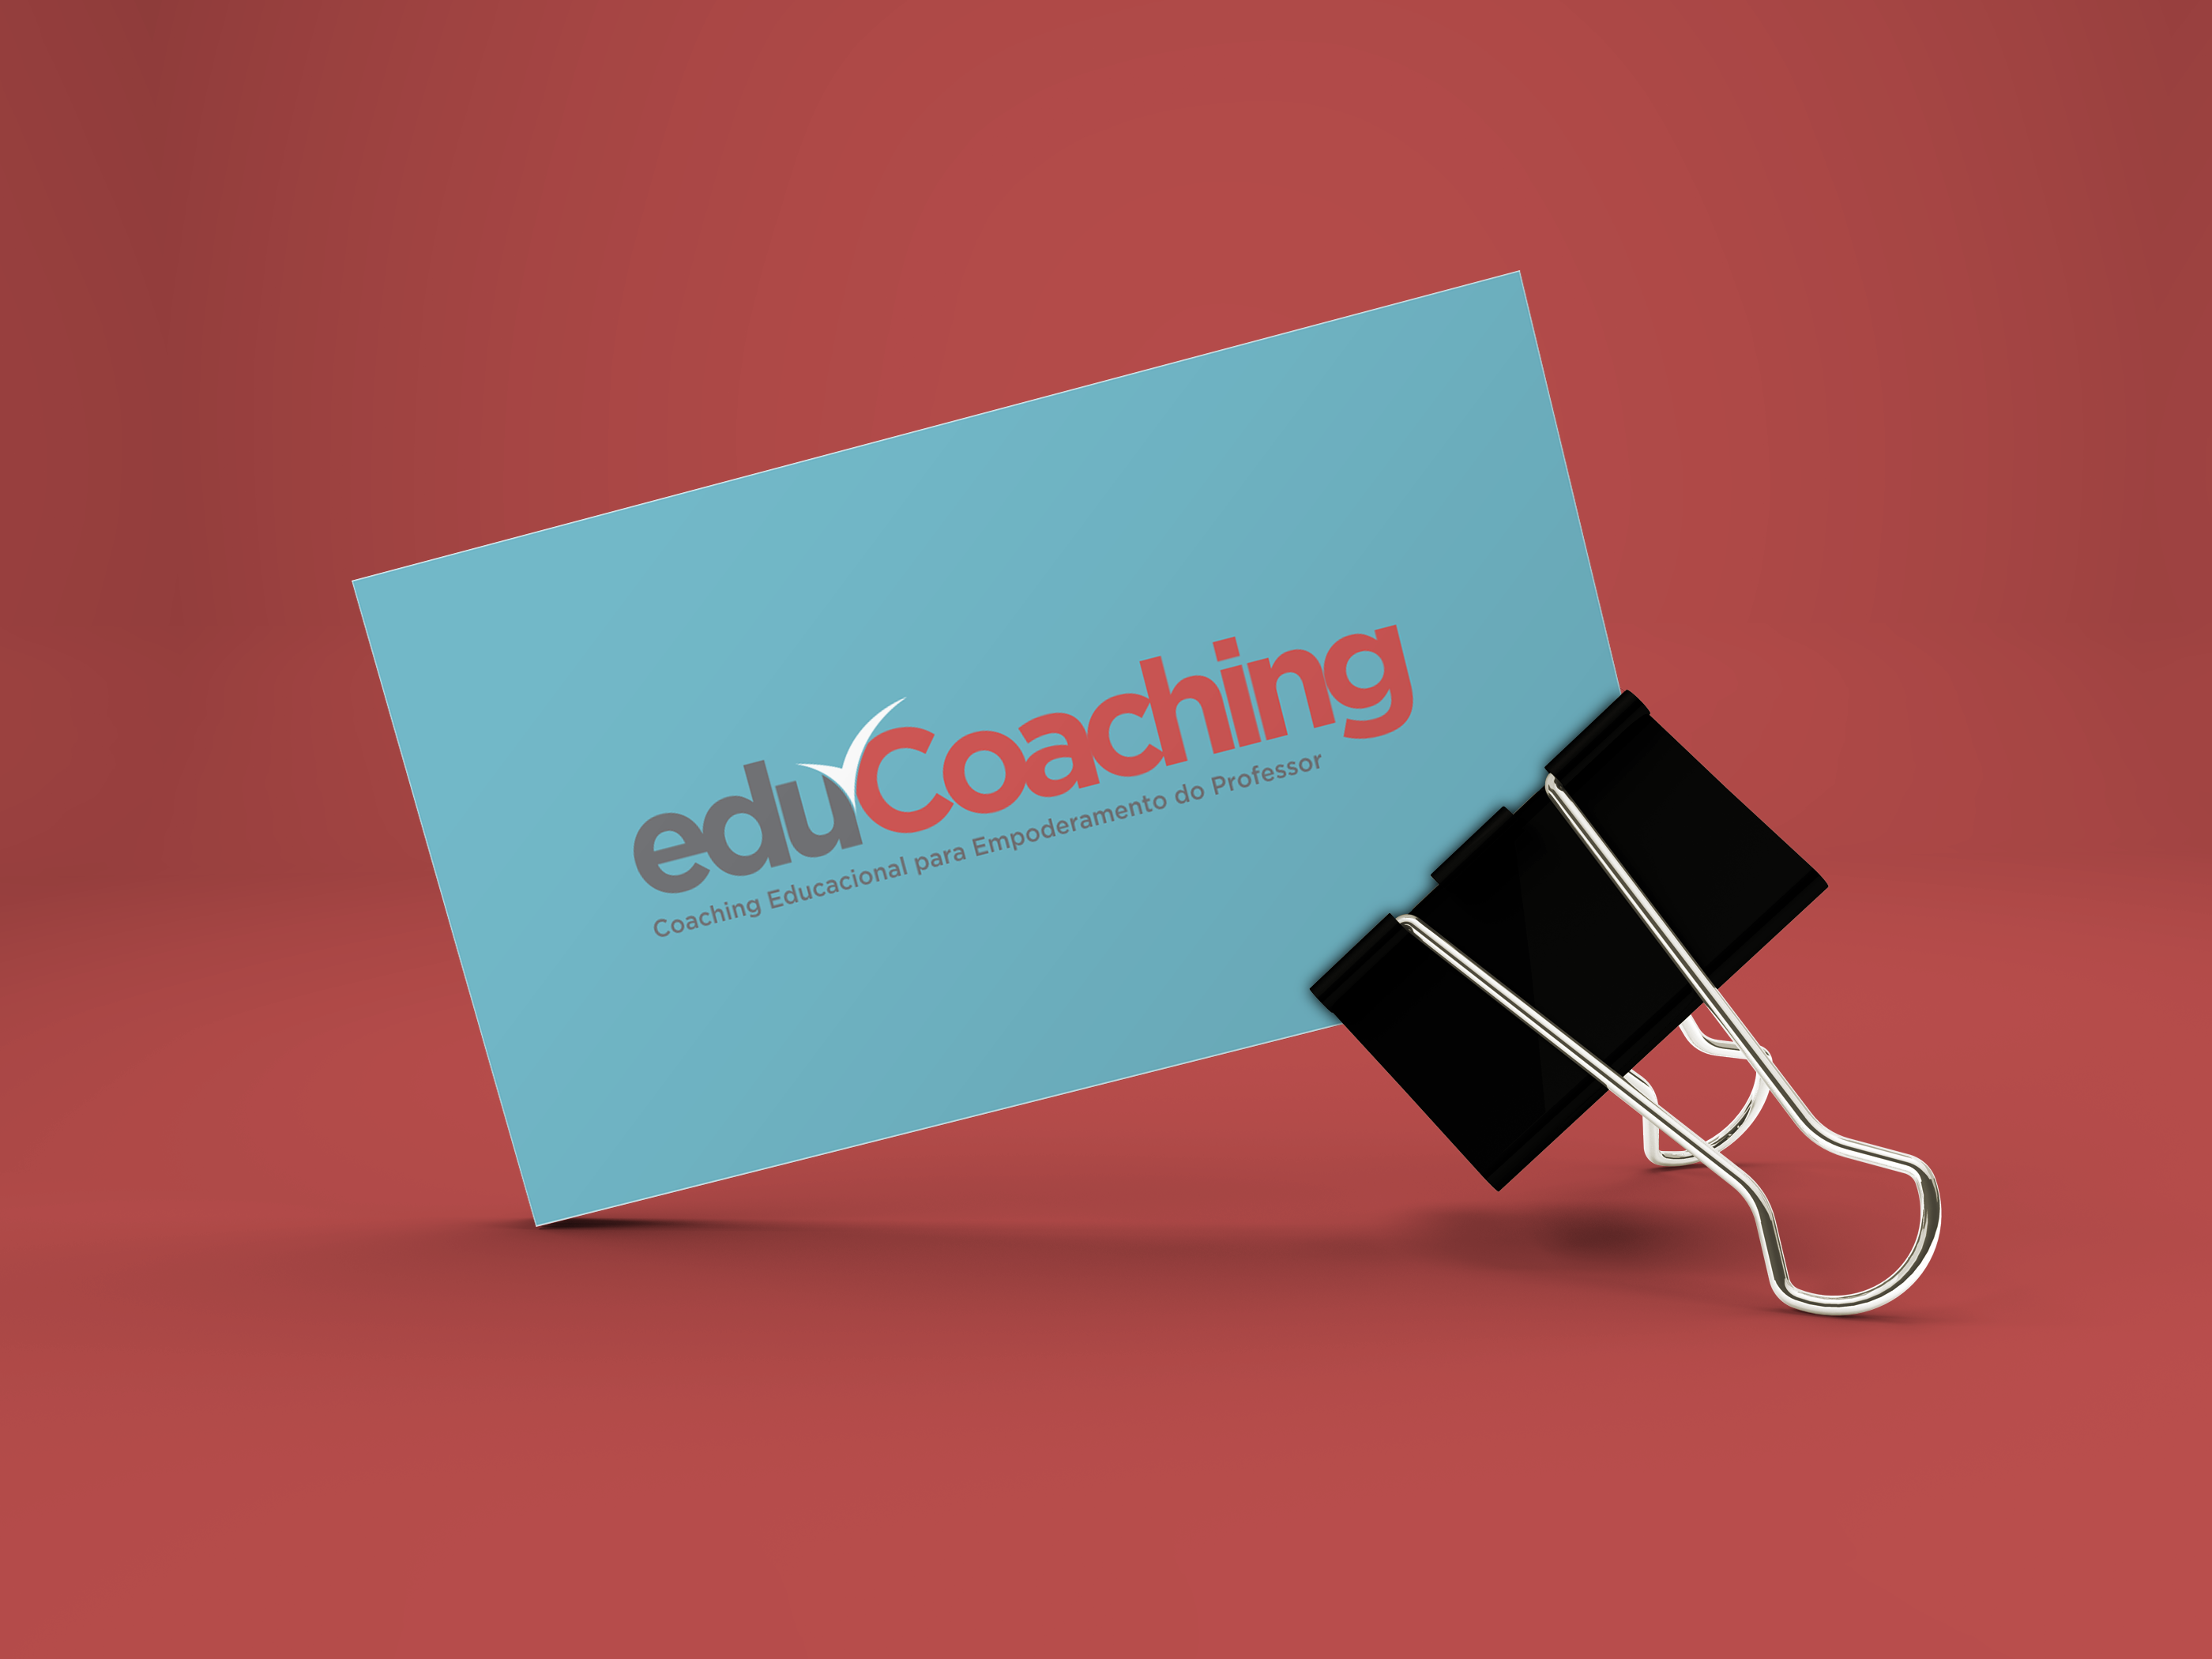 eduCoaching